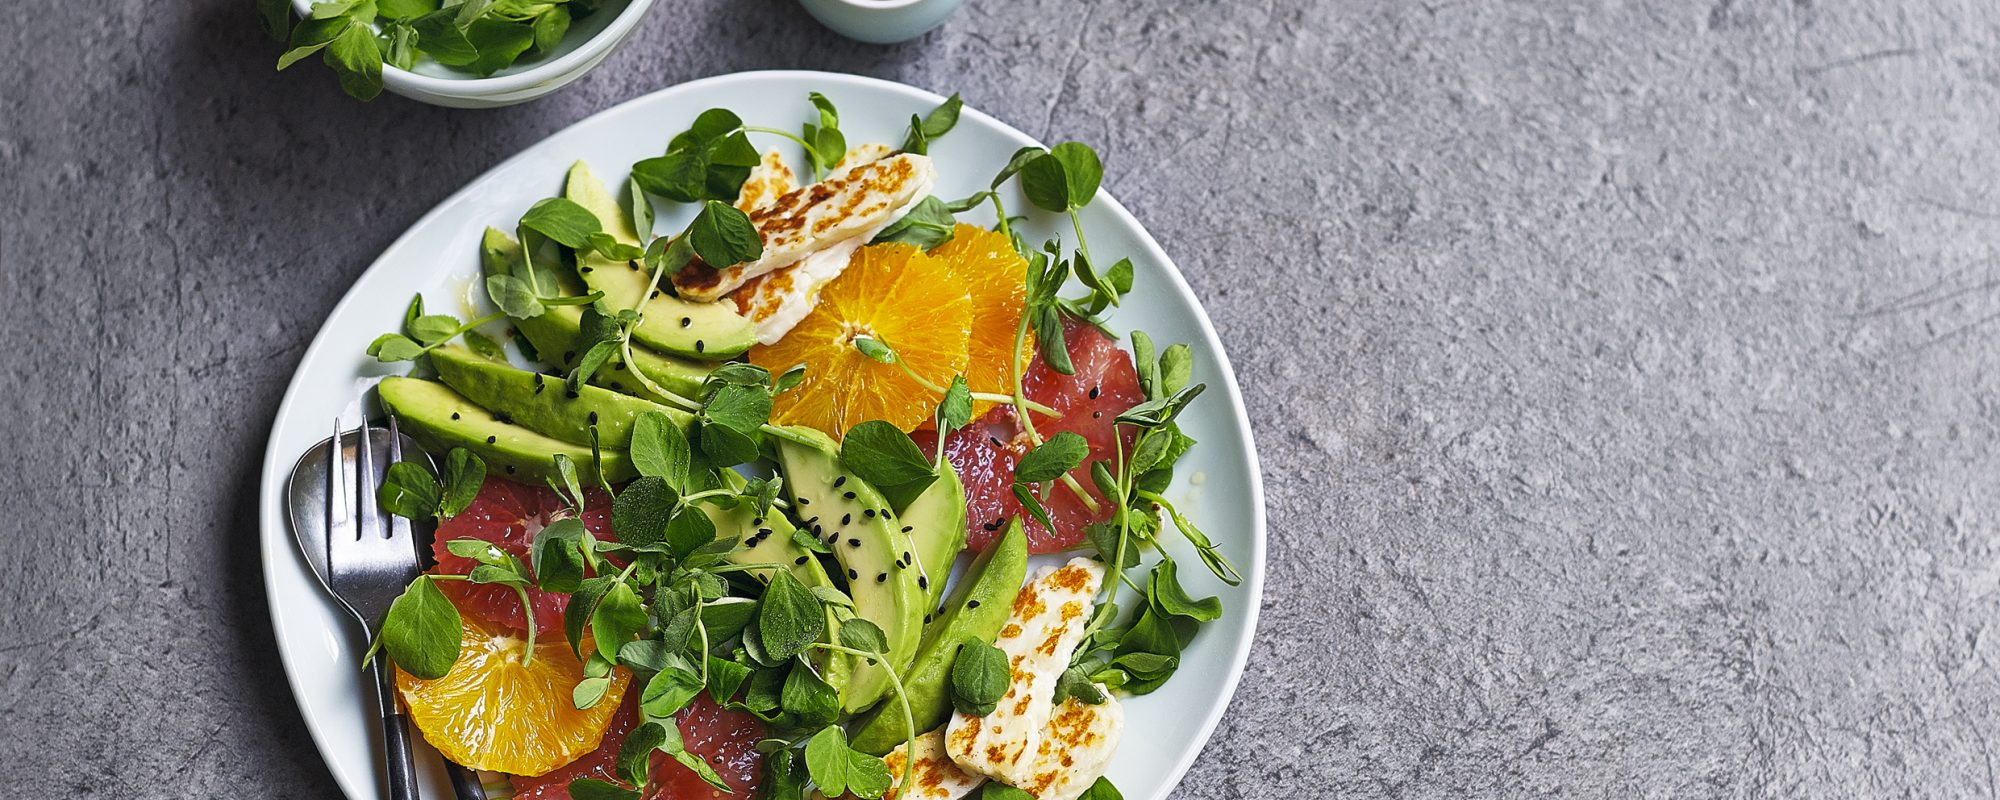 Citrus Salad with Pea Shoots, Halloumi & Avocado